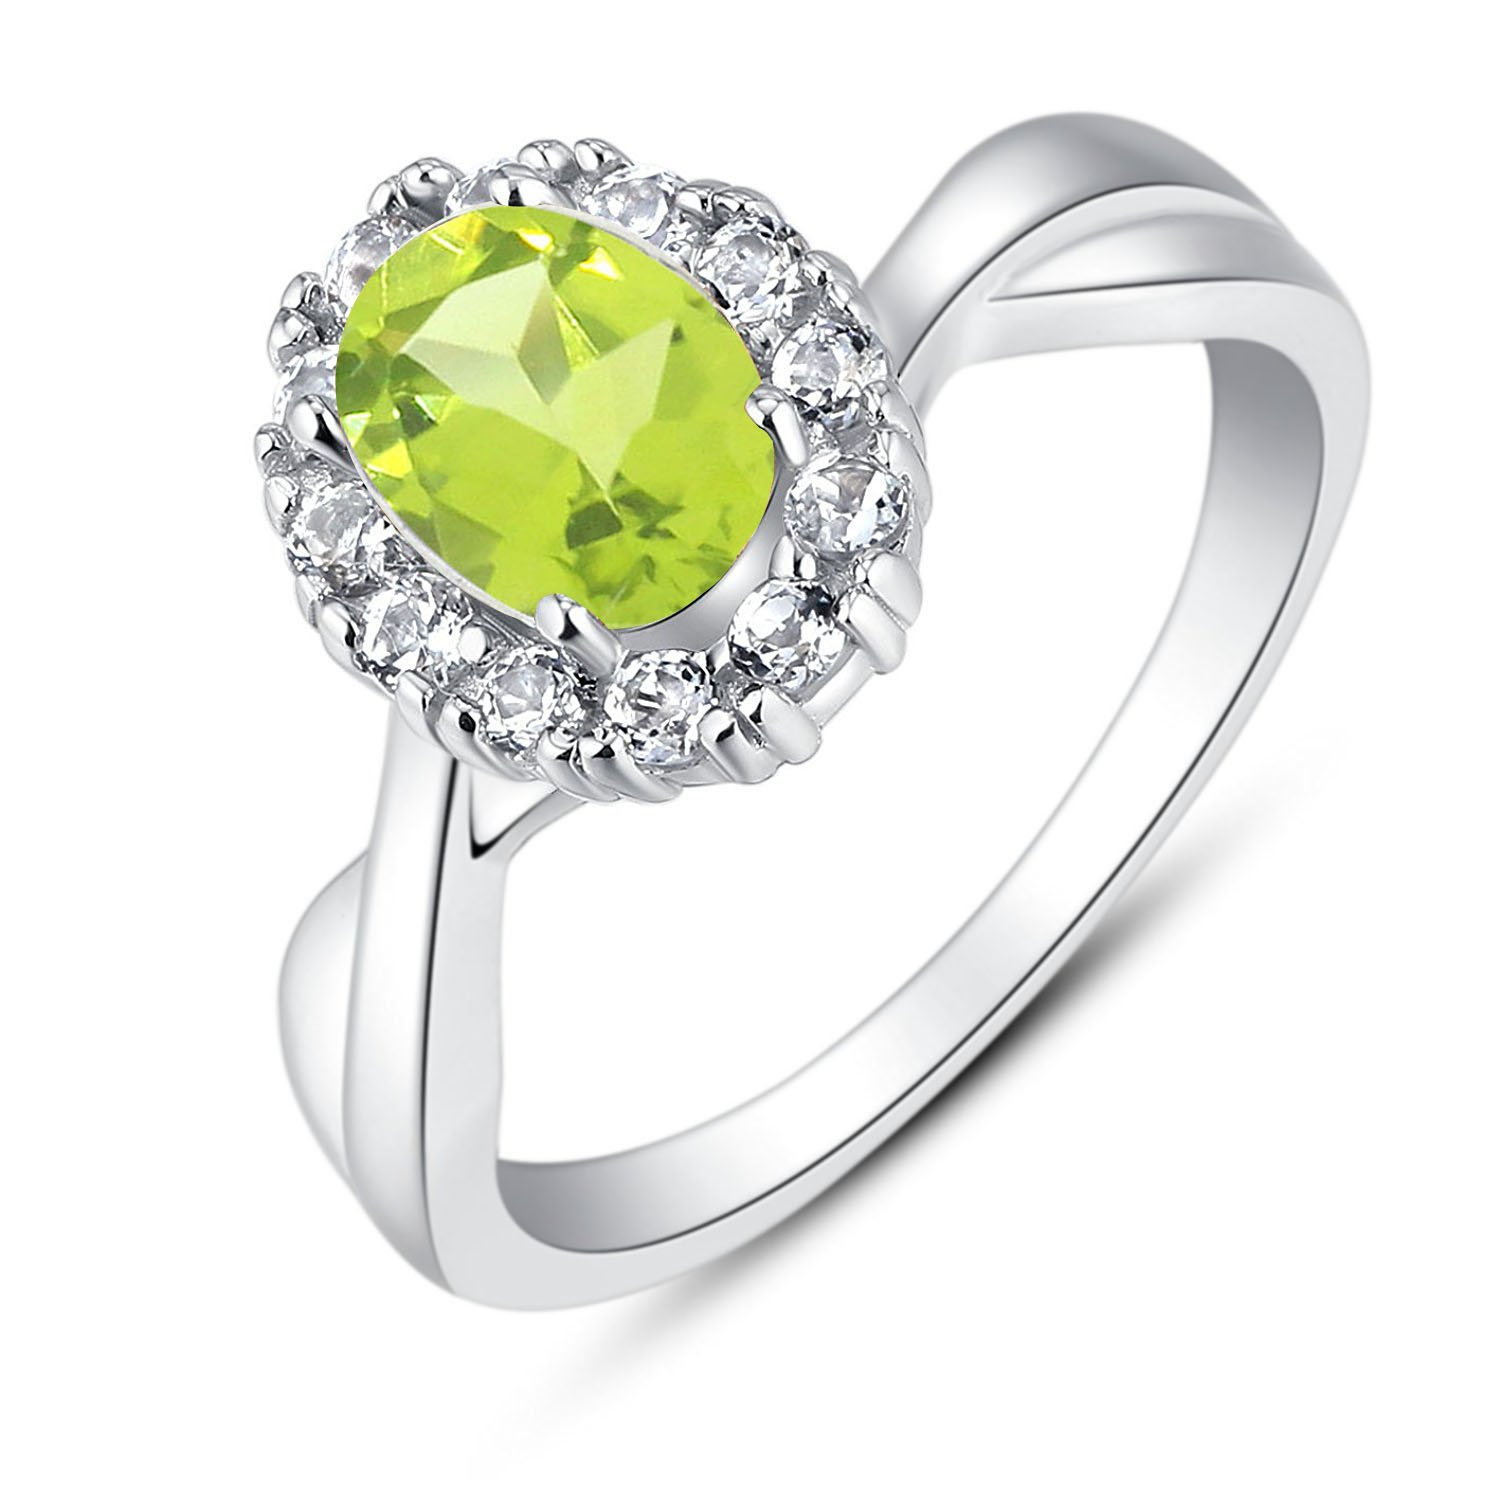 BL Jewelry Sterling Silver Oval Genuine Natural Gemstone Halo Infinity Ring (1 2/5 CT.T.W) (6, peridot)